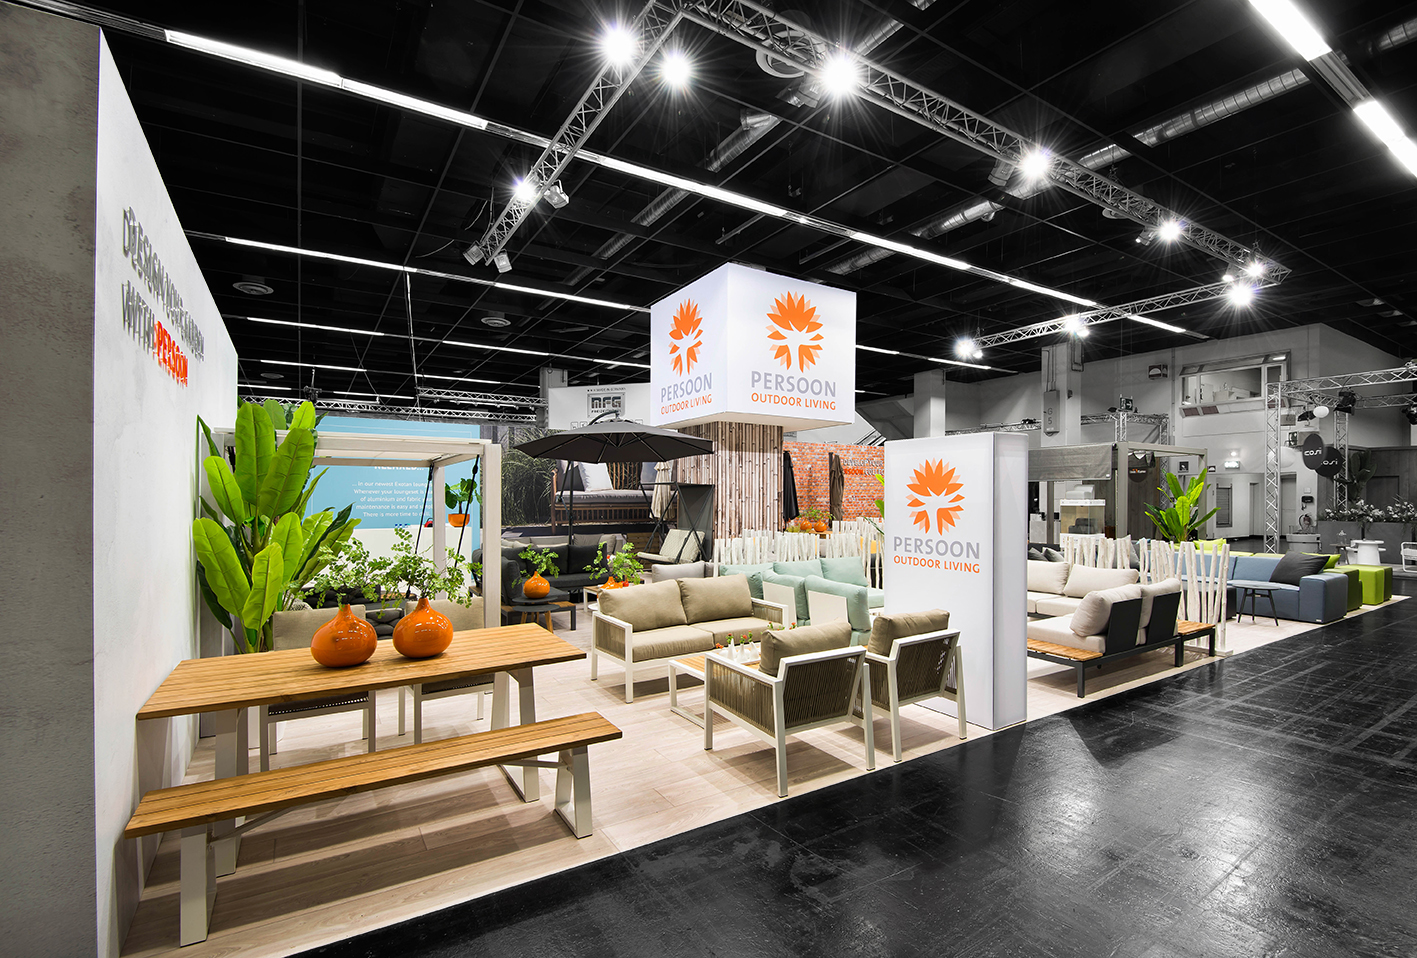 Beurs stand Persoon Outdoor Living - Spoga Gafa 2017 - 1 - 72 dpi